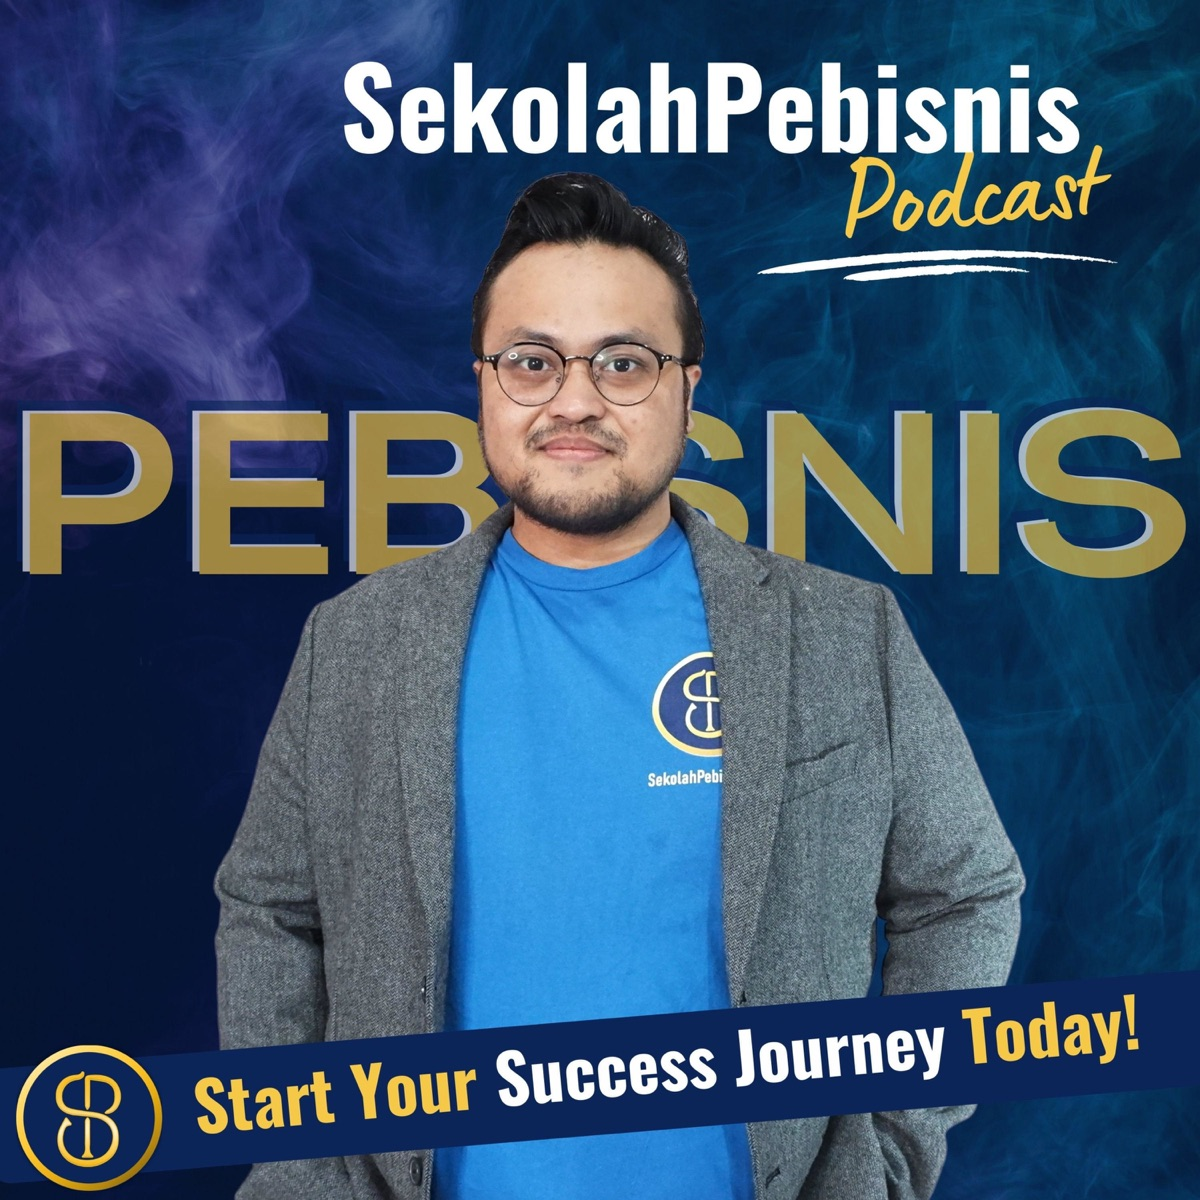 SekolahPebisnis Podcast with Yosef Abas